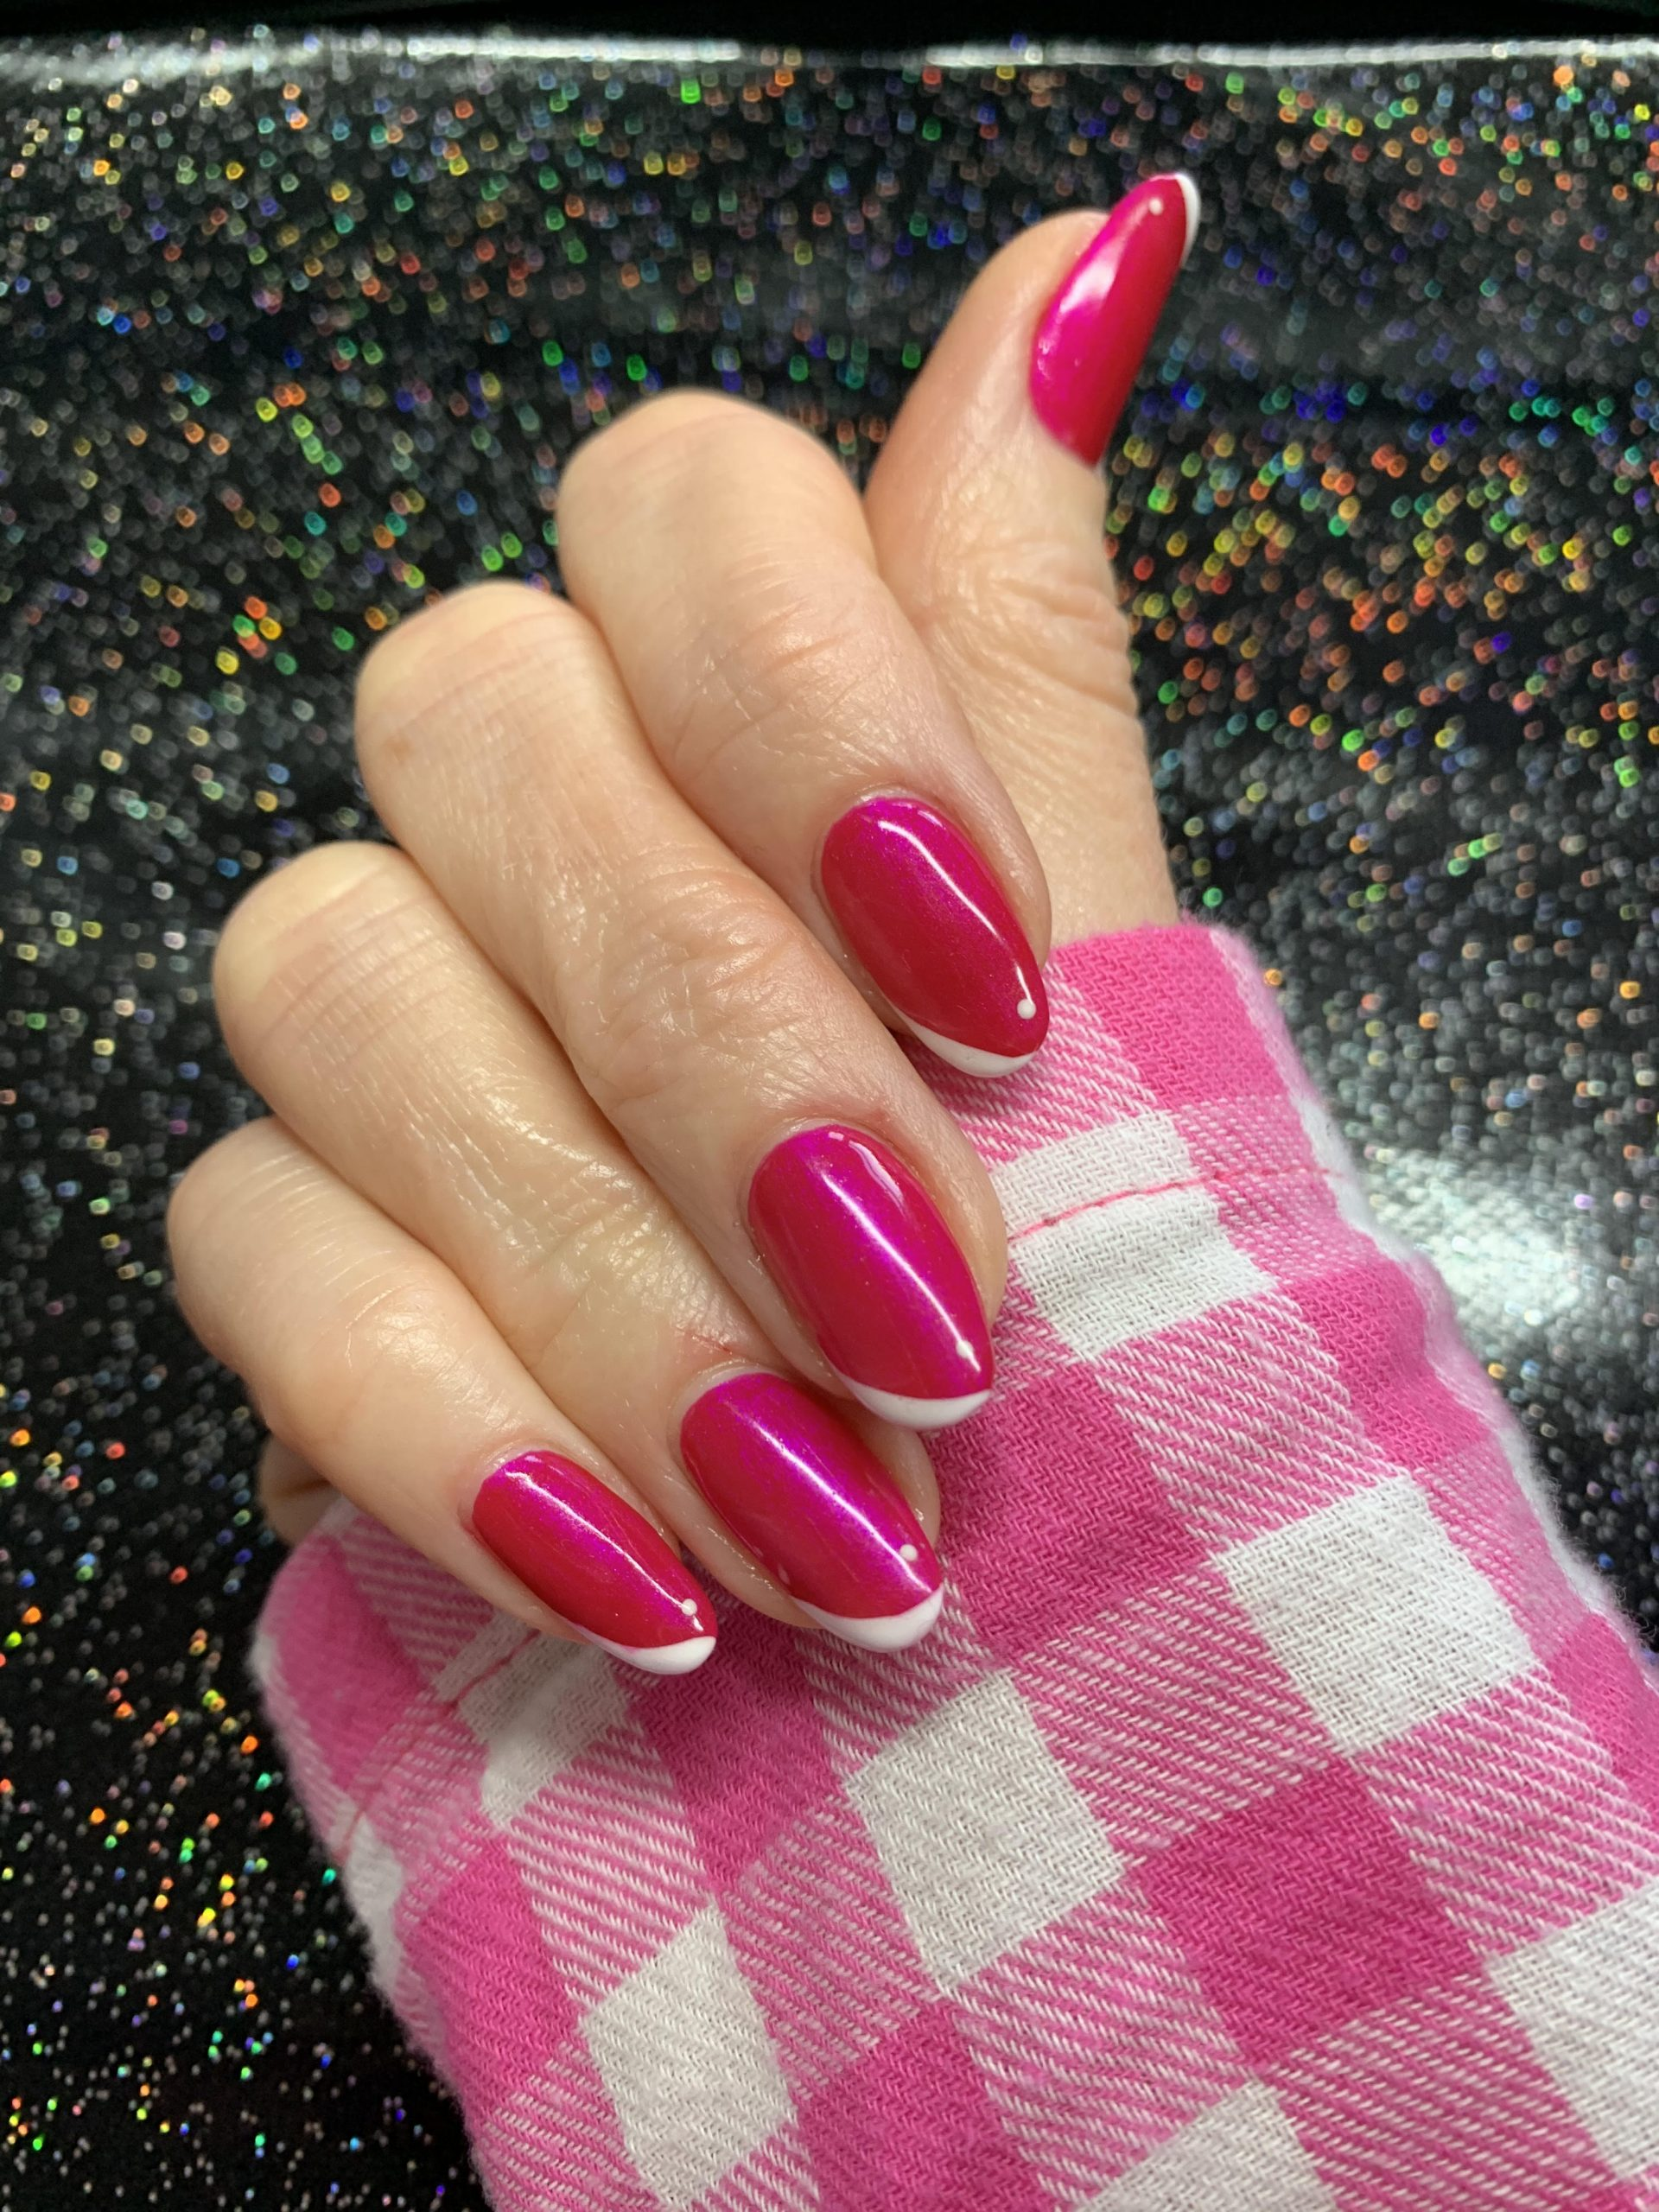 pink nails, alternative tips, CND Shellac, nail art, nail pro, nail artist, nail technician, gel nails, shellac nails, acrylic nails, ware, mobile